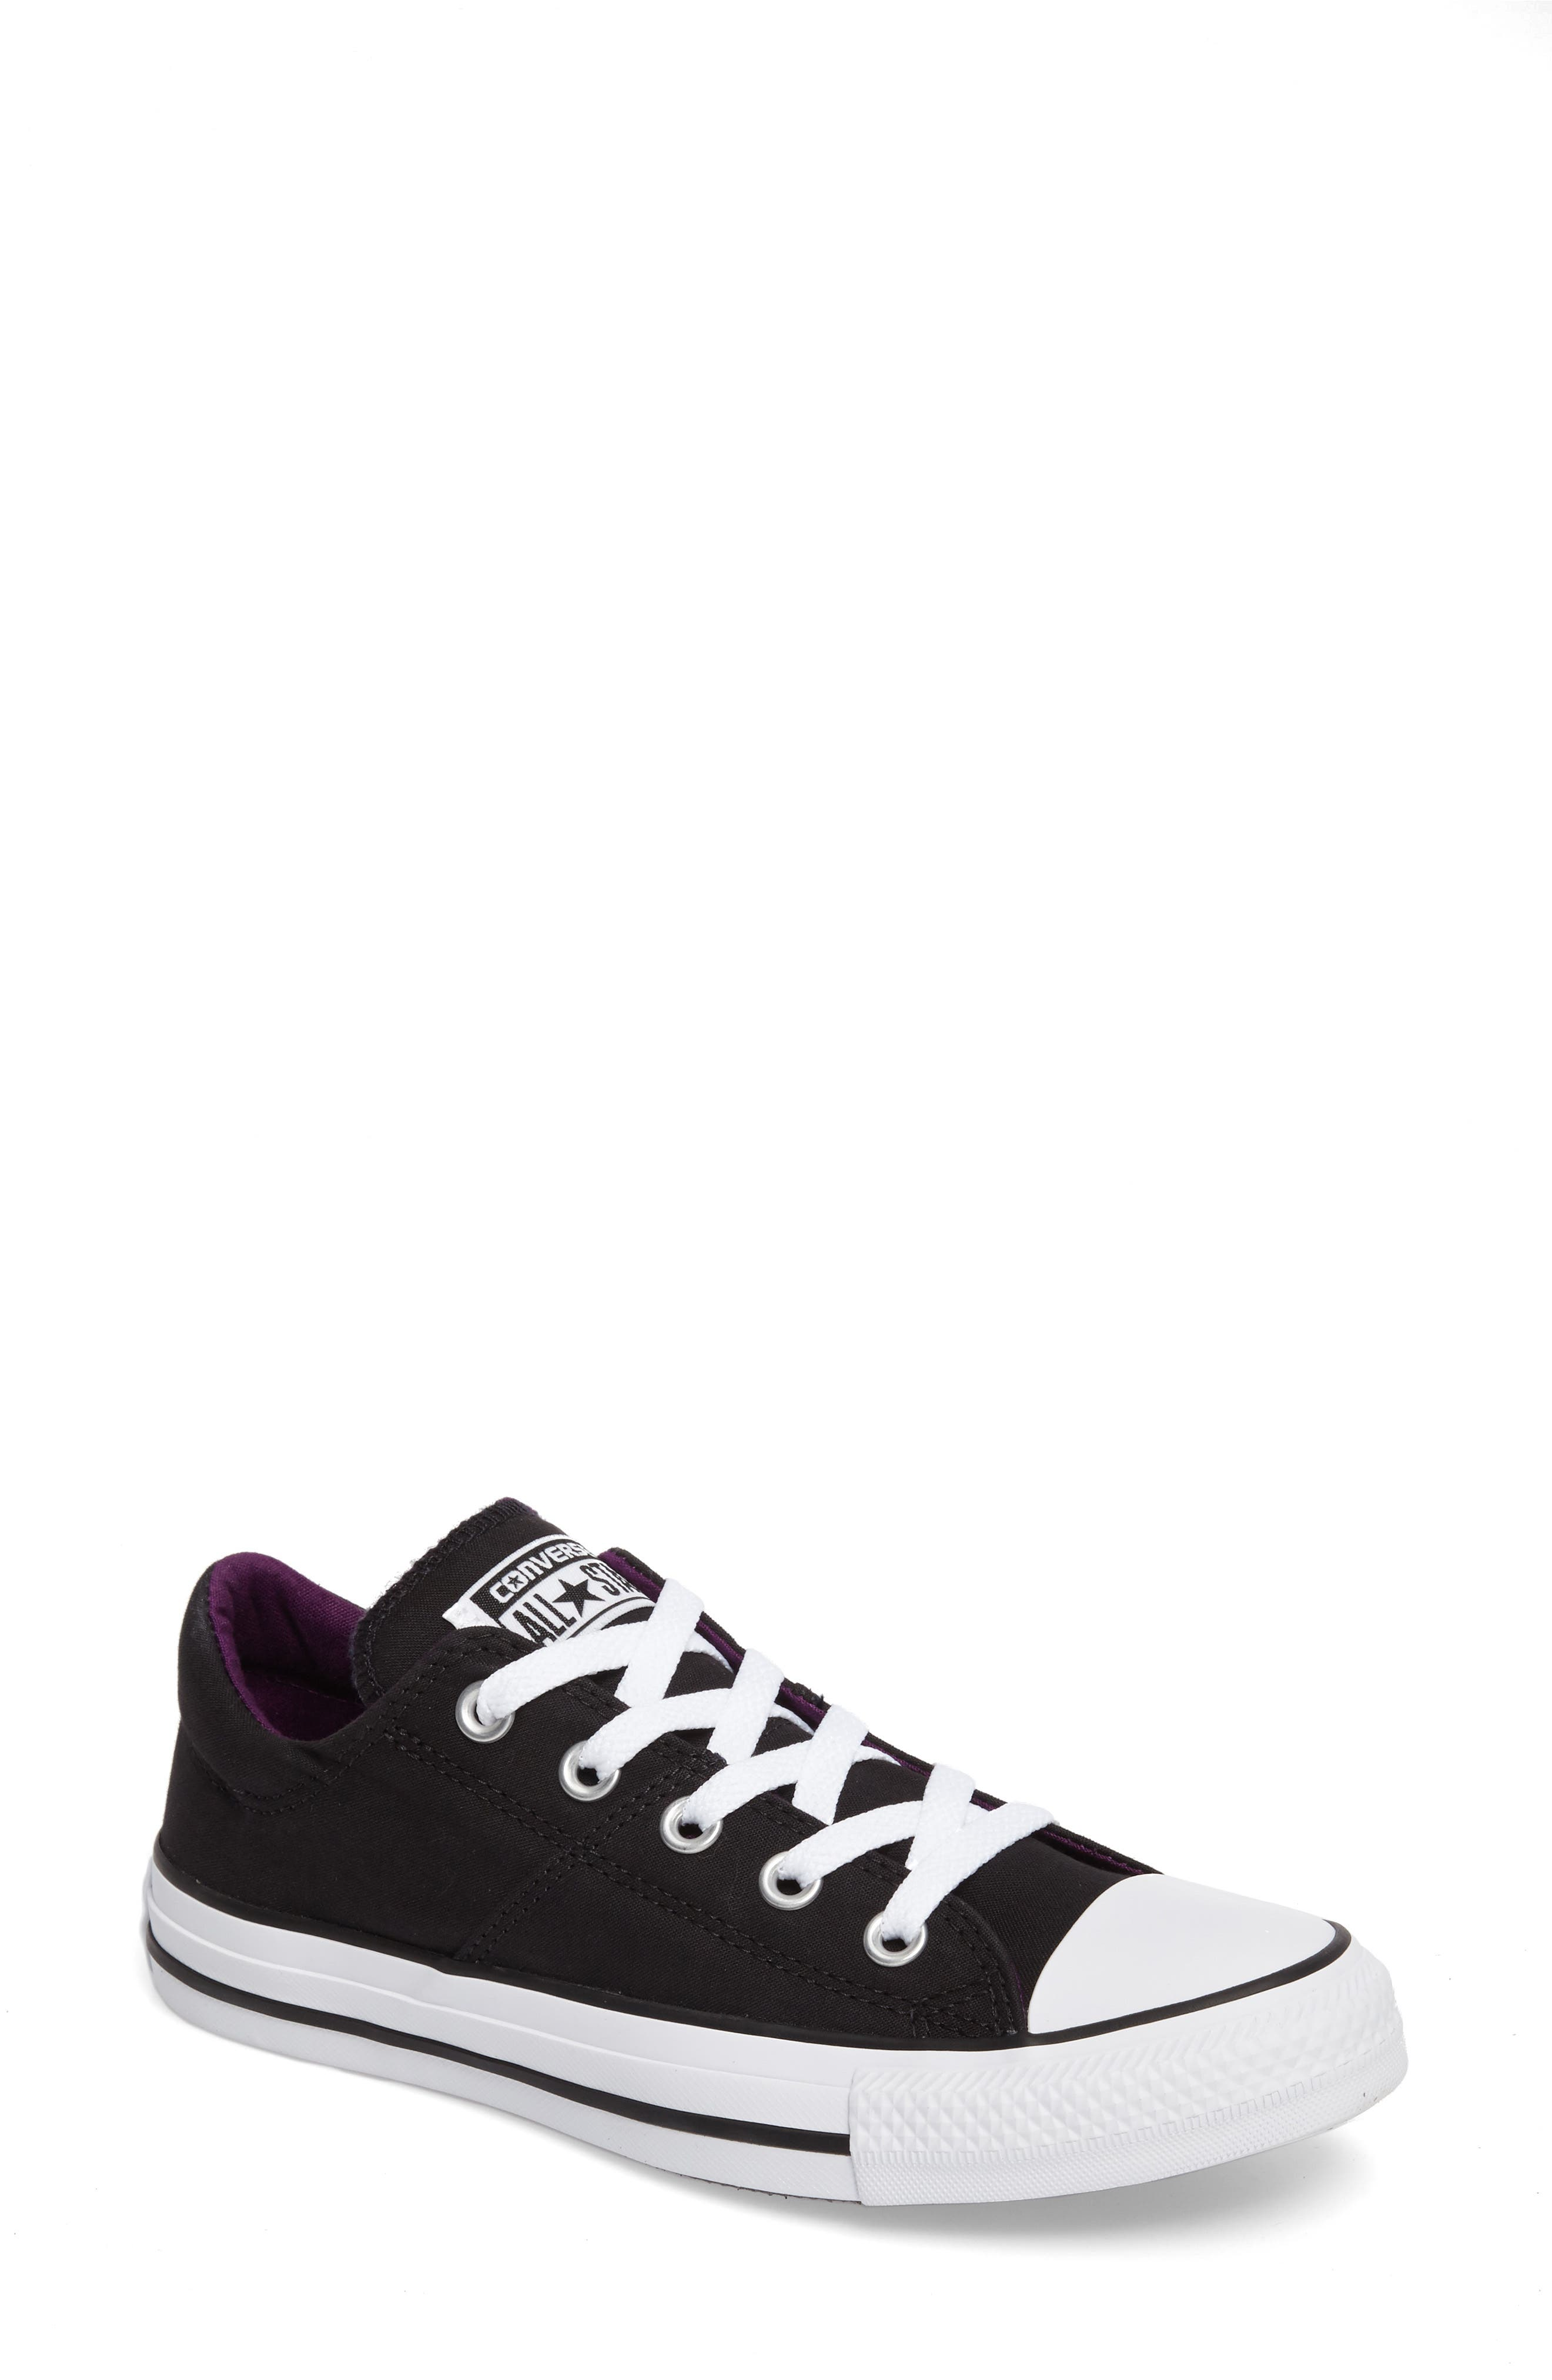 Chuck Taylor<sup>®</sup> All Star<sup>®</sup> Madison Low Top Sneaker,                             Main thumbnail 1, color,                             Black Canvas